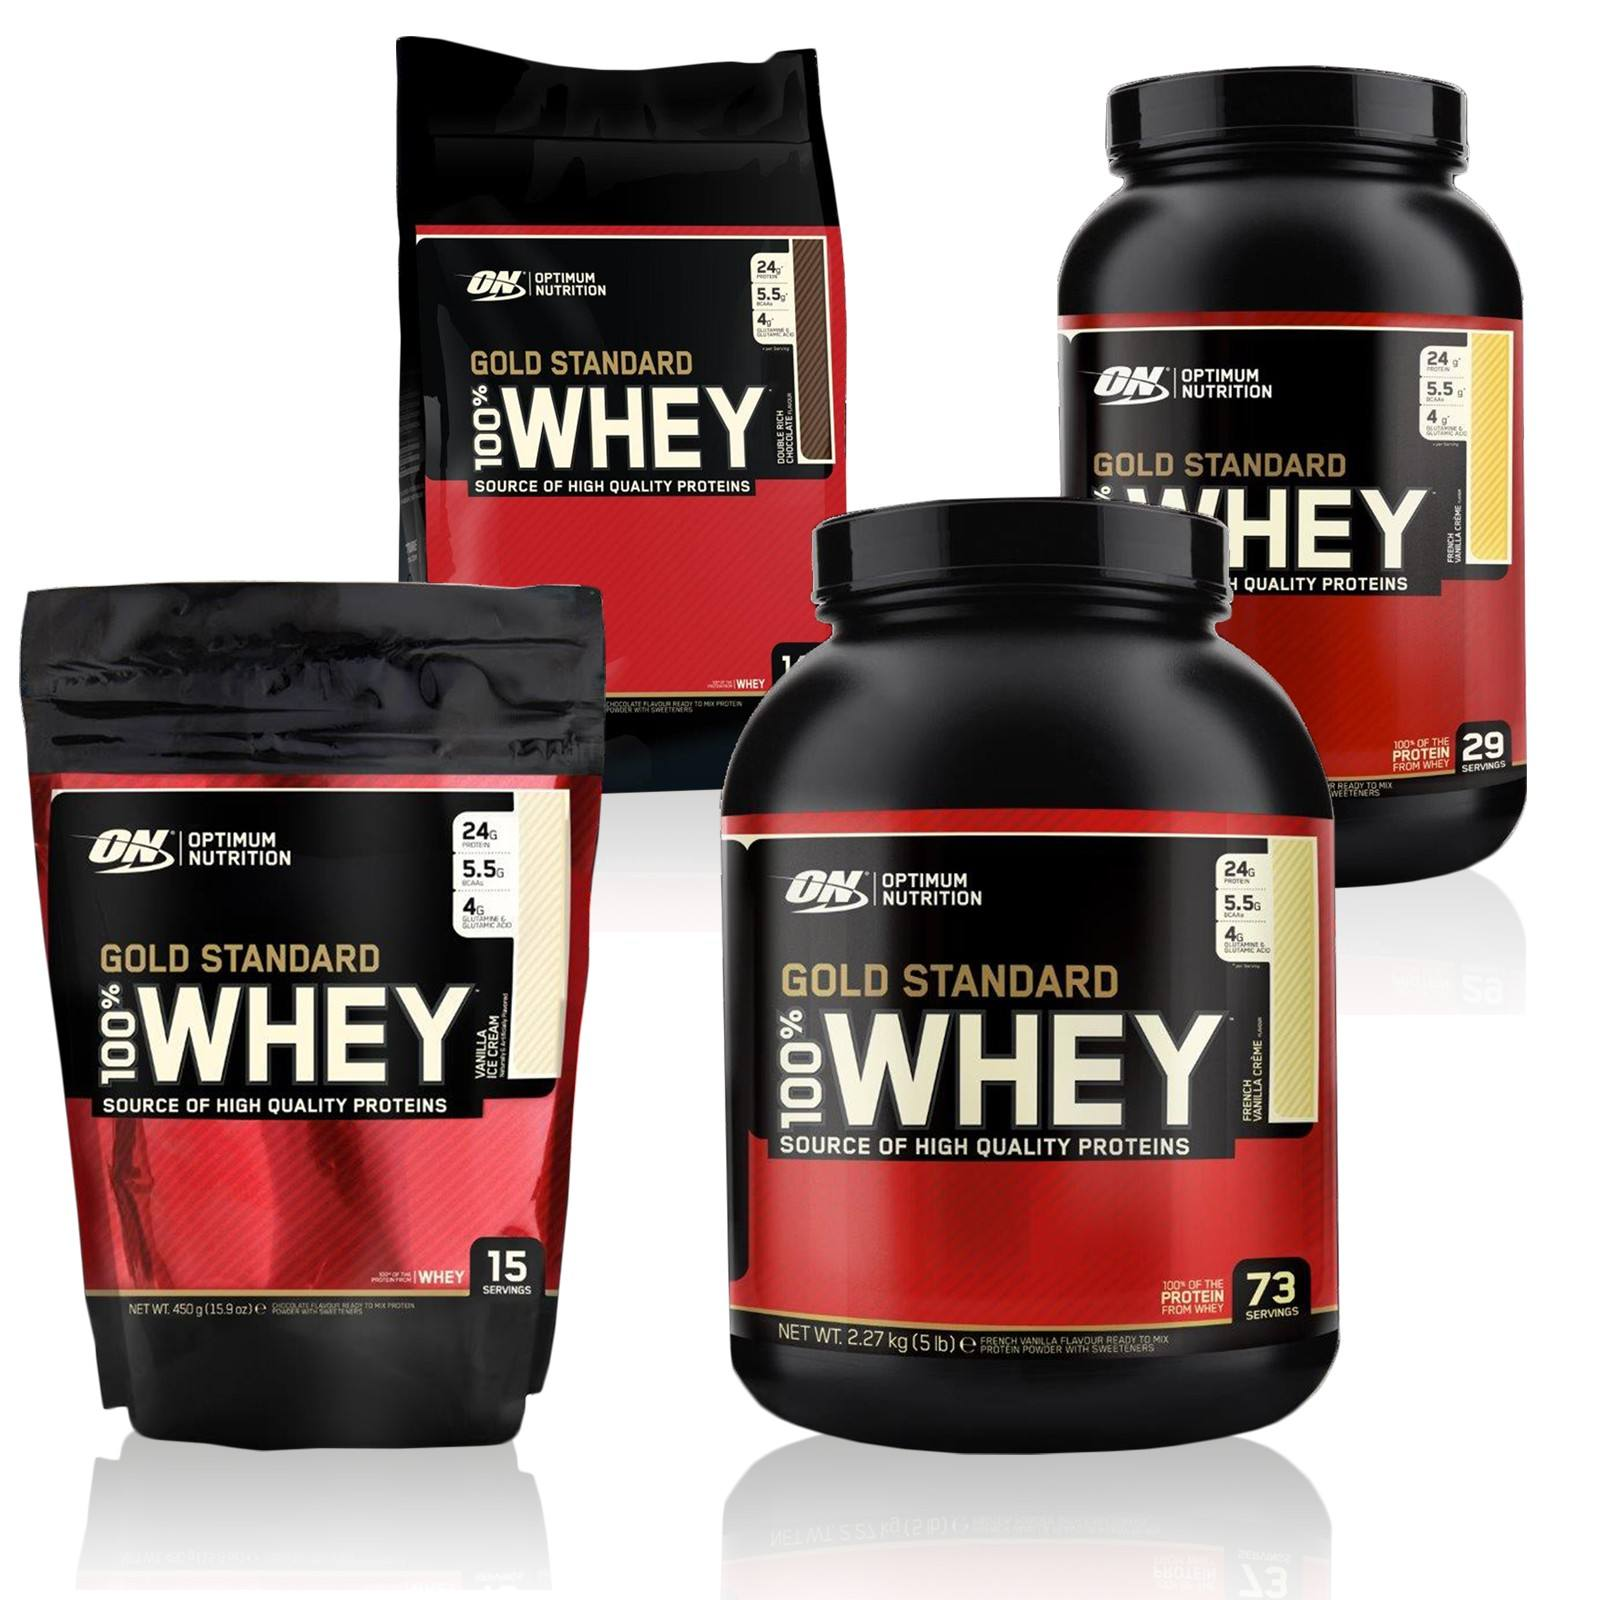 Gold Standard 100% Whey Protein wholesale